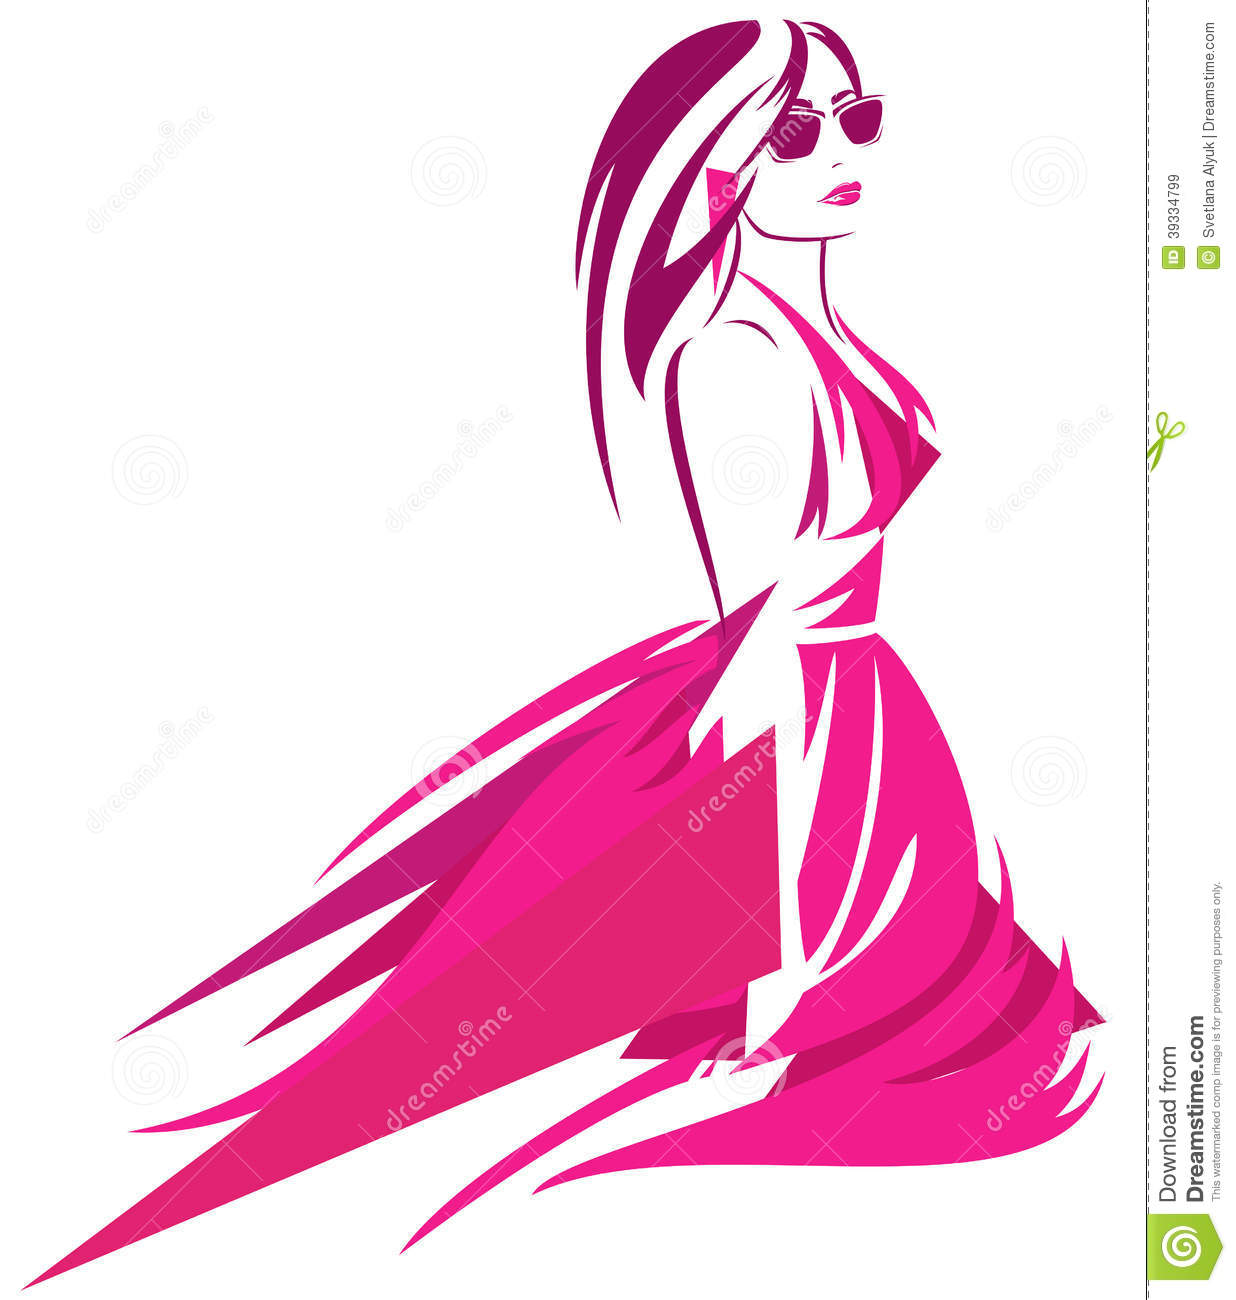 Fashionista stock vector. Illustration of background ...